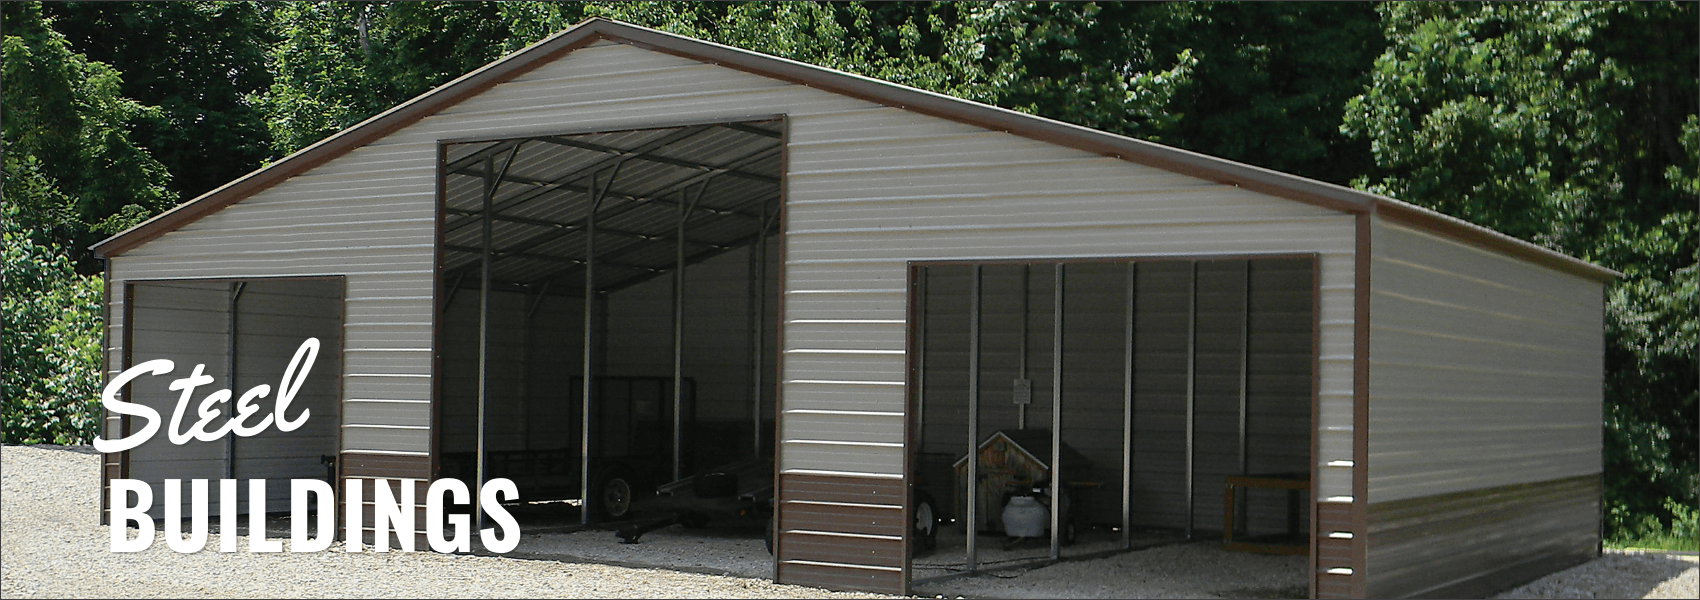 mvs steel buildings feb 2017 homepage banner 1700x600